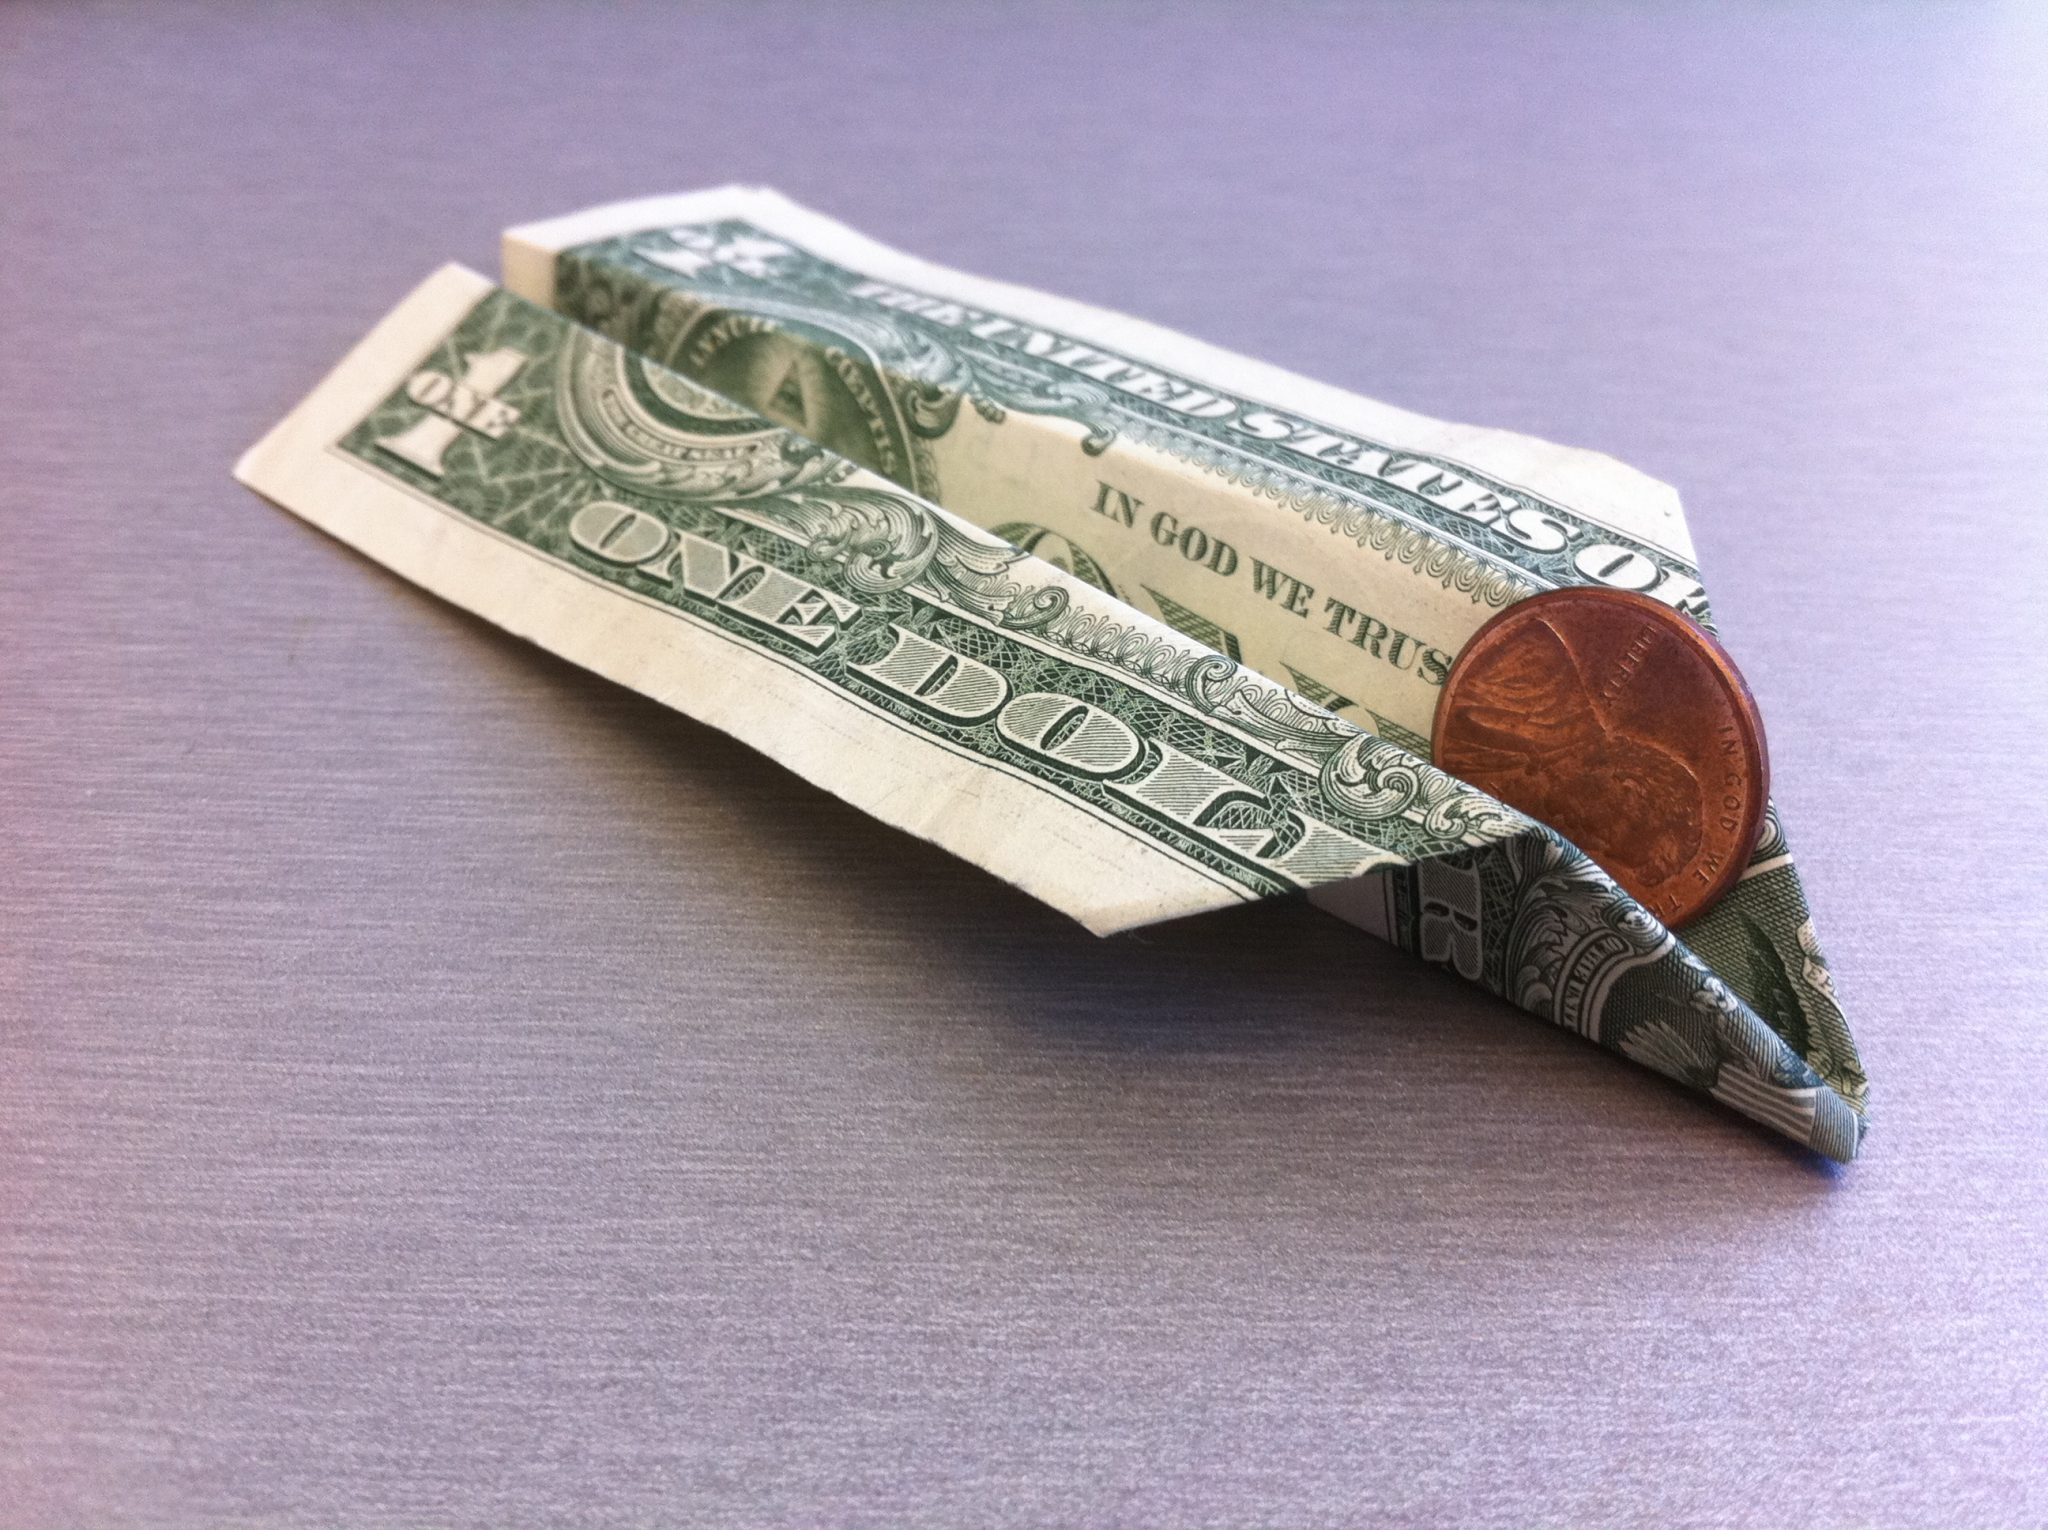 Paper Plane Made Of Money - A Grassroots Way To Get Republicans To Donate More To Charity